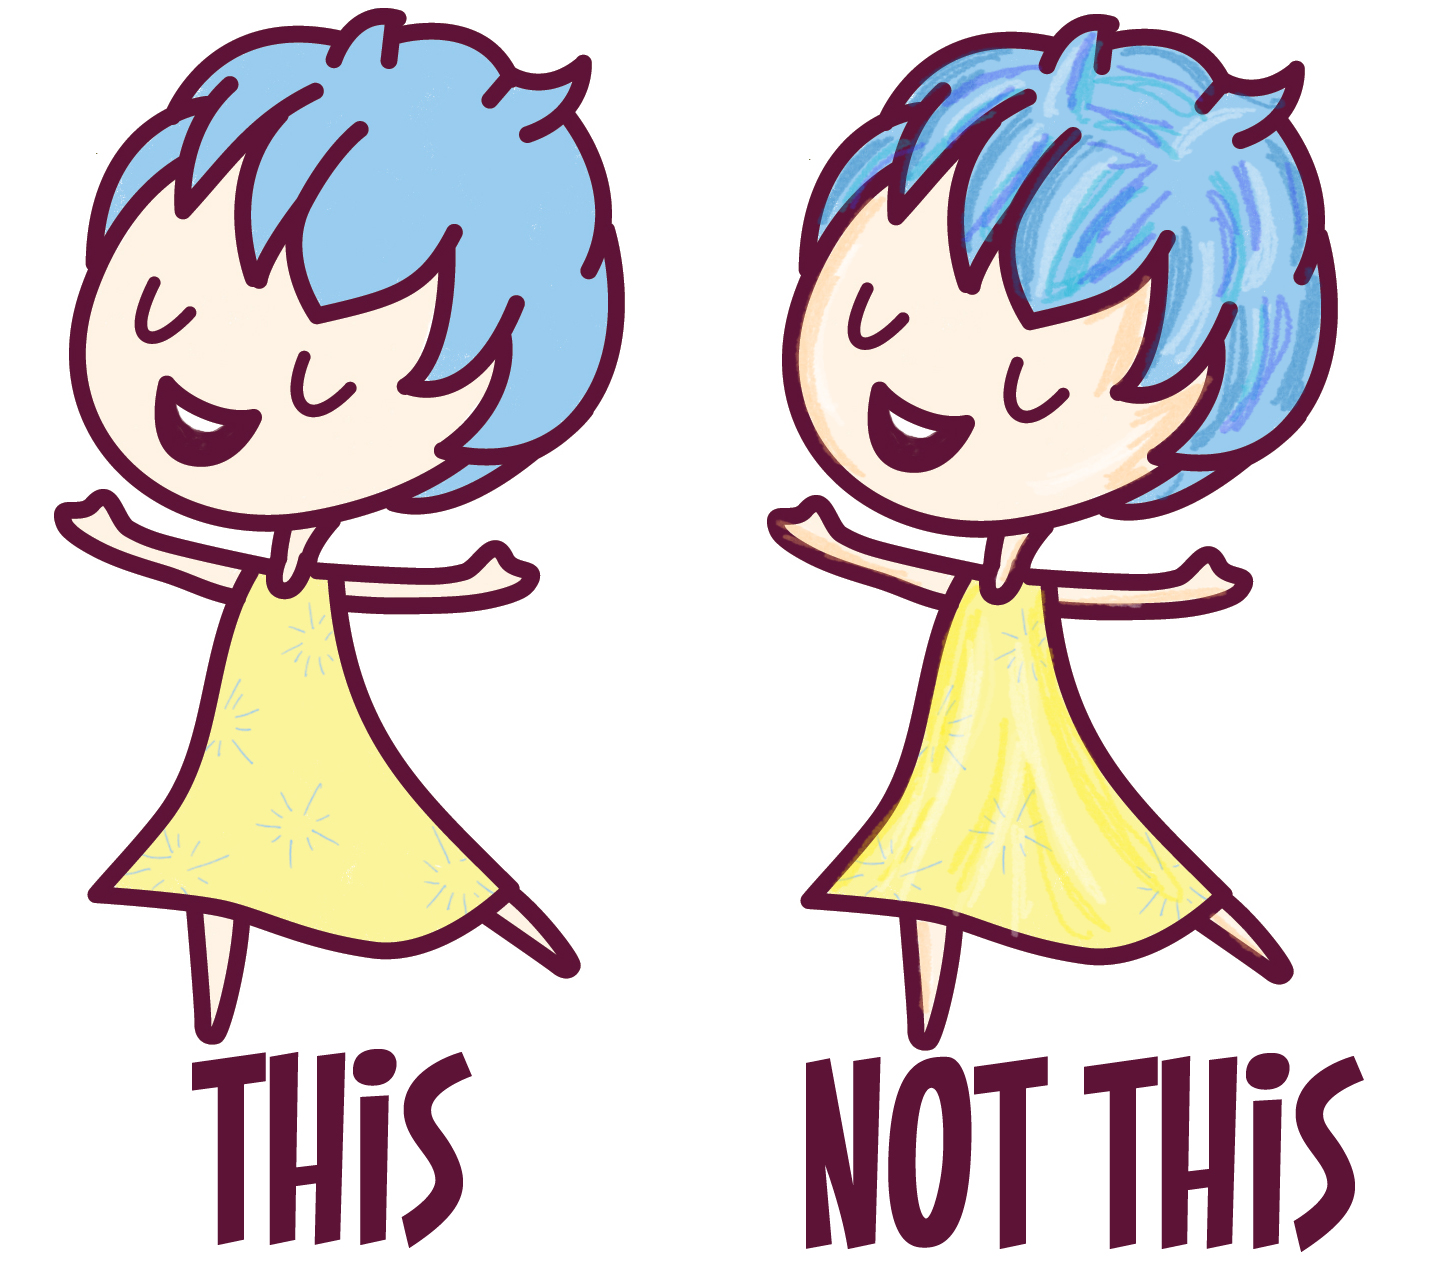 Use Flat Colors - Not Gradients in Kawaii Style Drawings